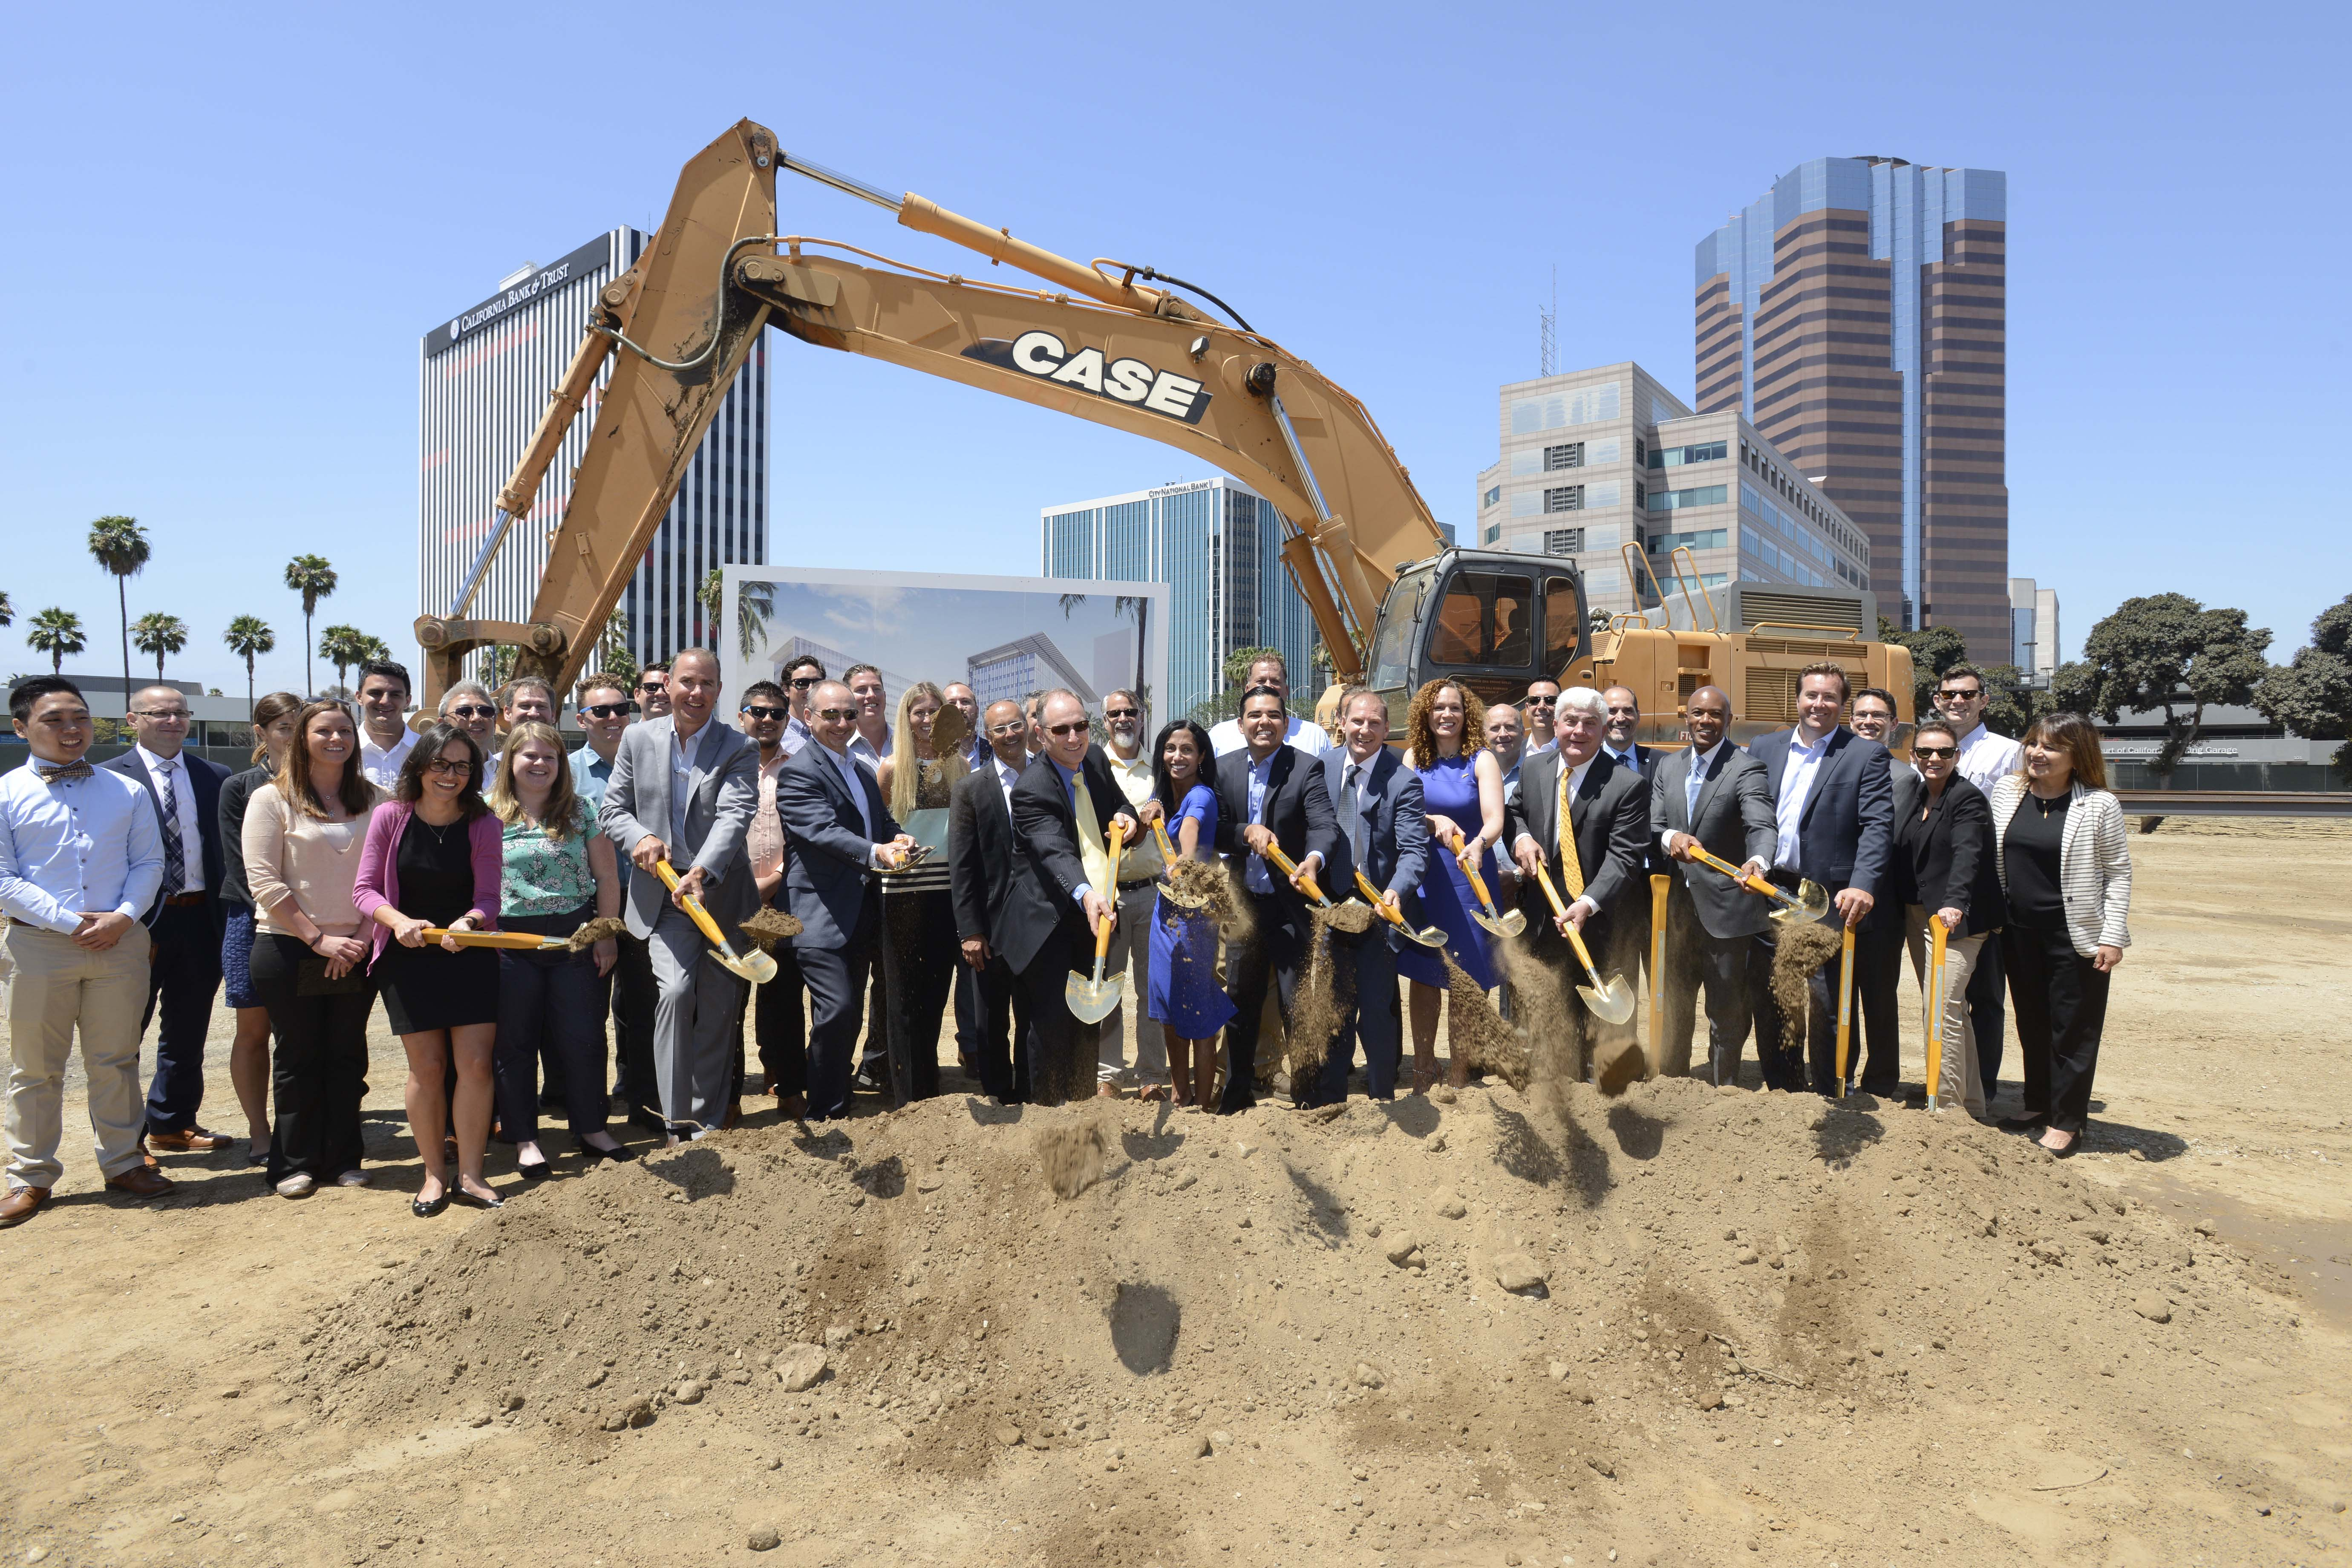 Groundbreaking at new Long Beach Civic Center site ushers in new era for downtown Long Beach.